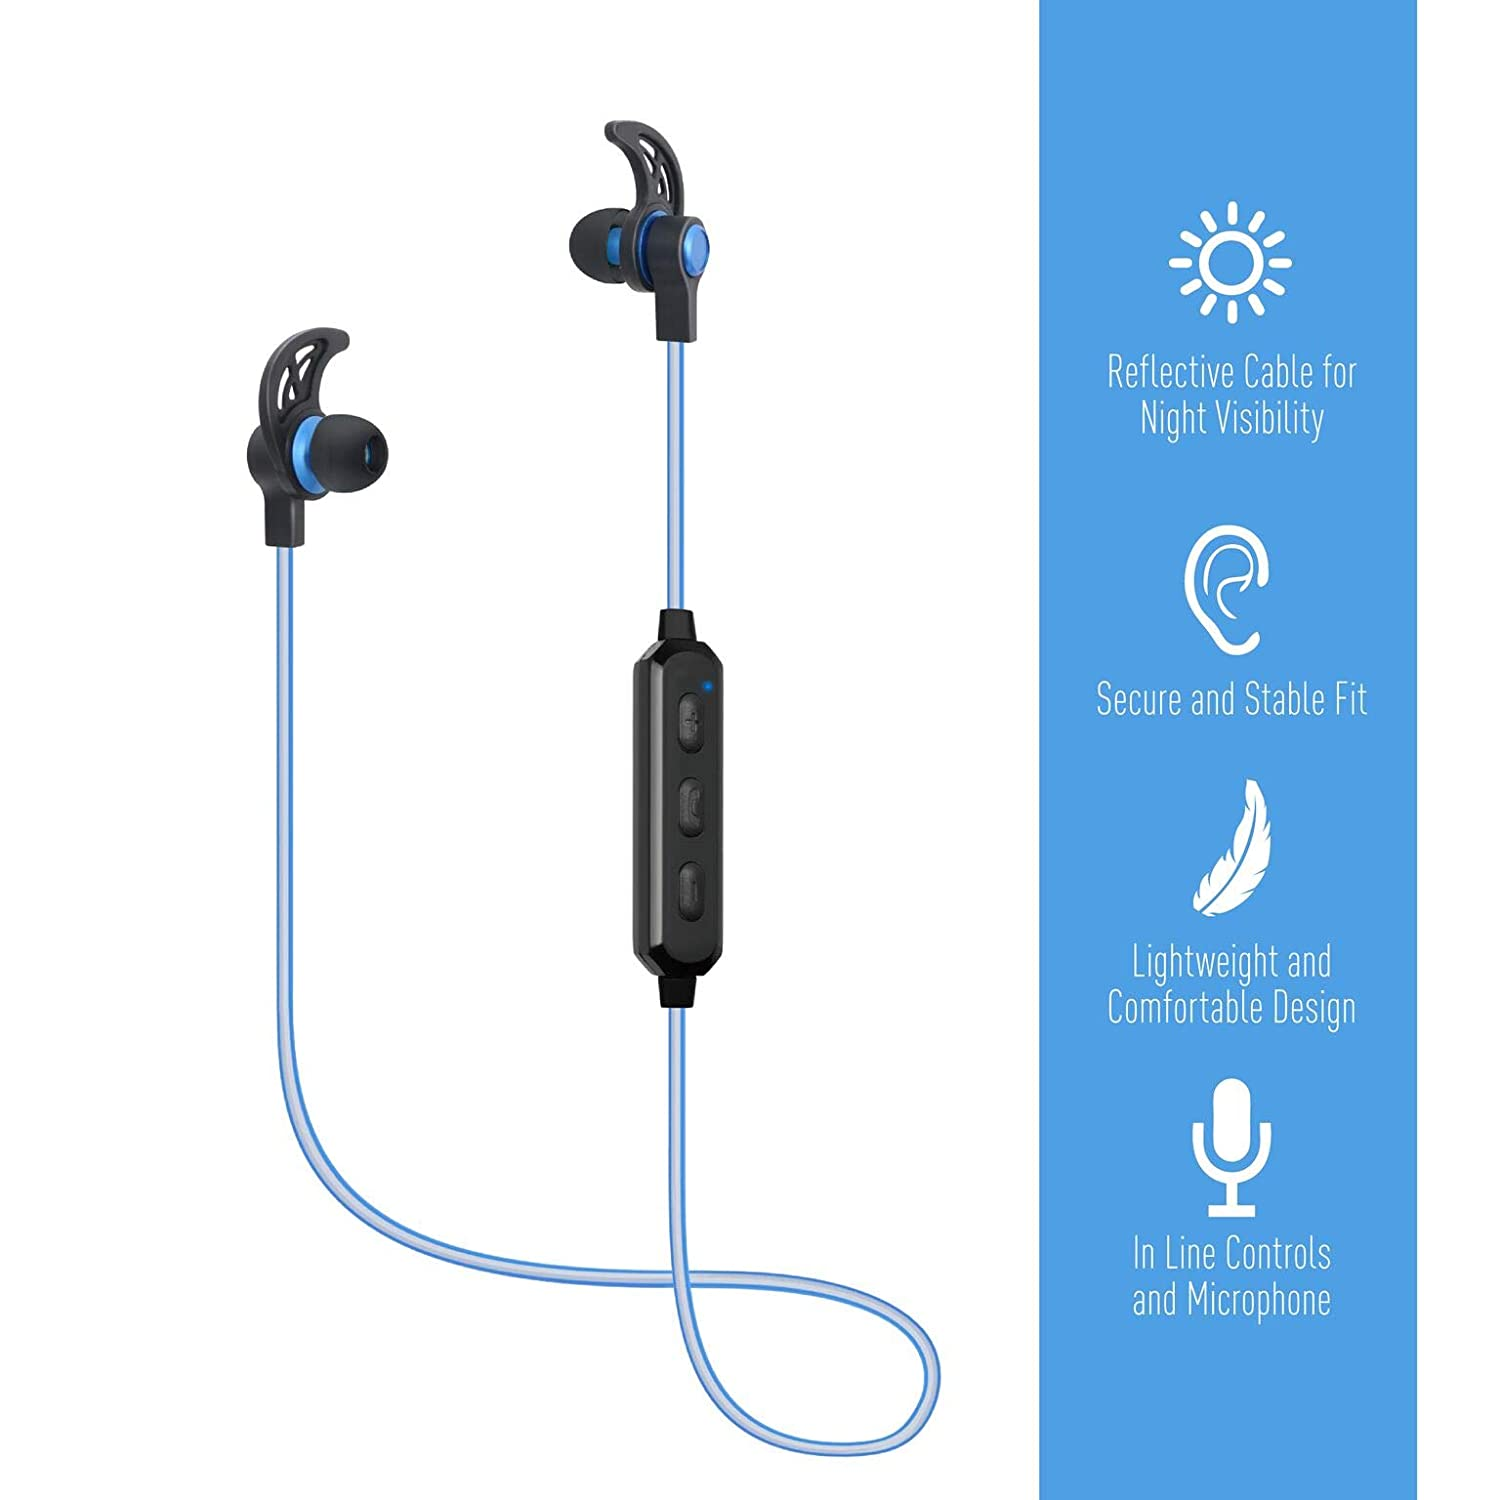 Amazon.com: Jarv Wave Reflect Bluetooth Headphones,Wireless Earbuds Sweatproof Earphones with Reflective Cable and Secure Fit for iPhone Xs Max, XR, X, ...